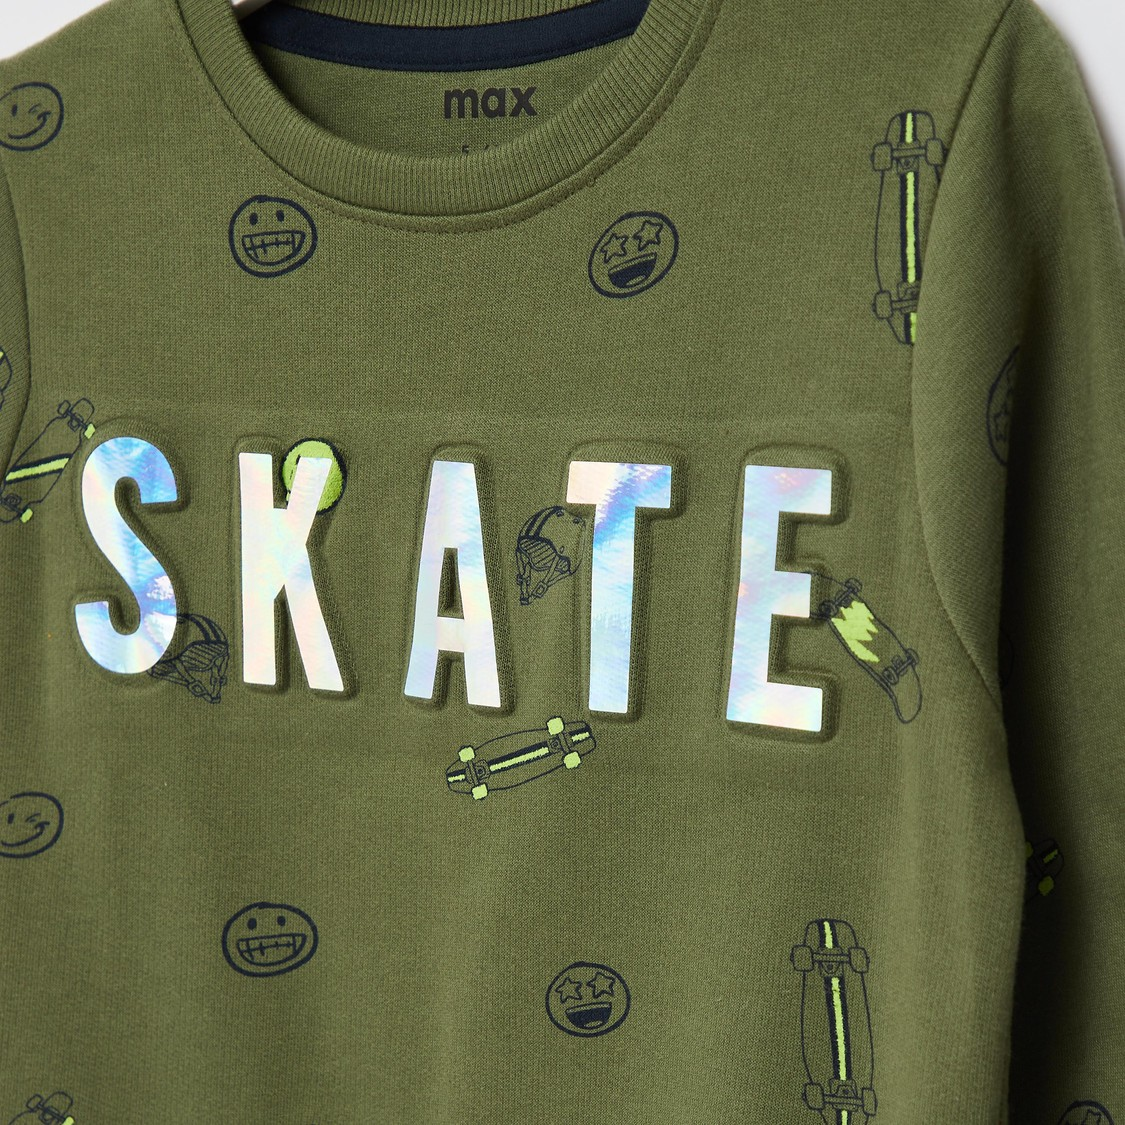 All-Over Print Sweatshirt with Round Neck and Long Sleeves